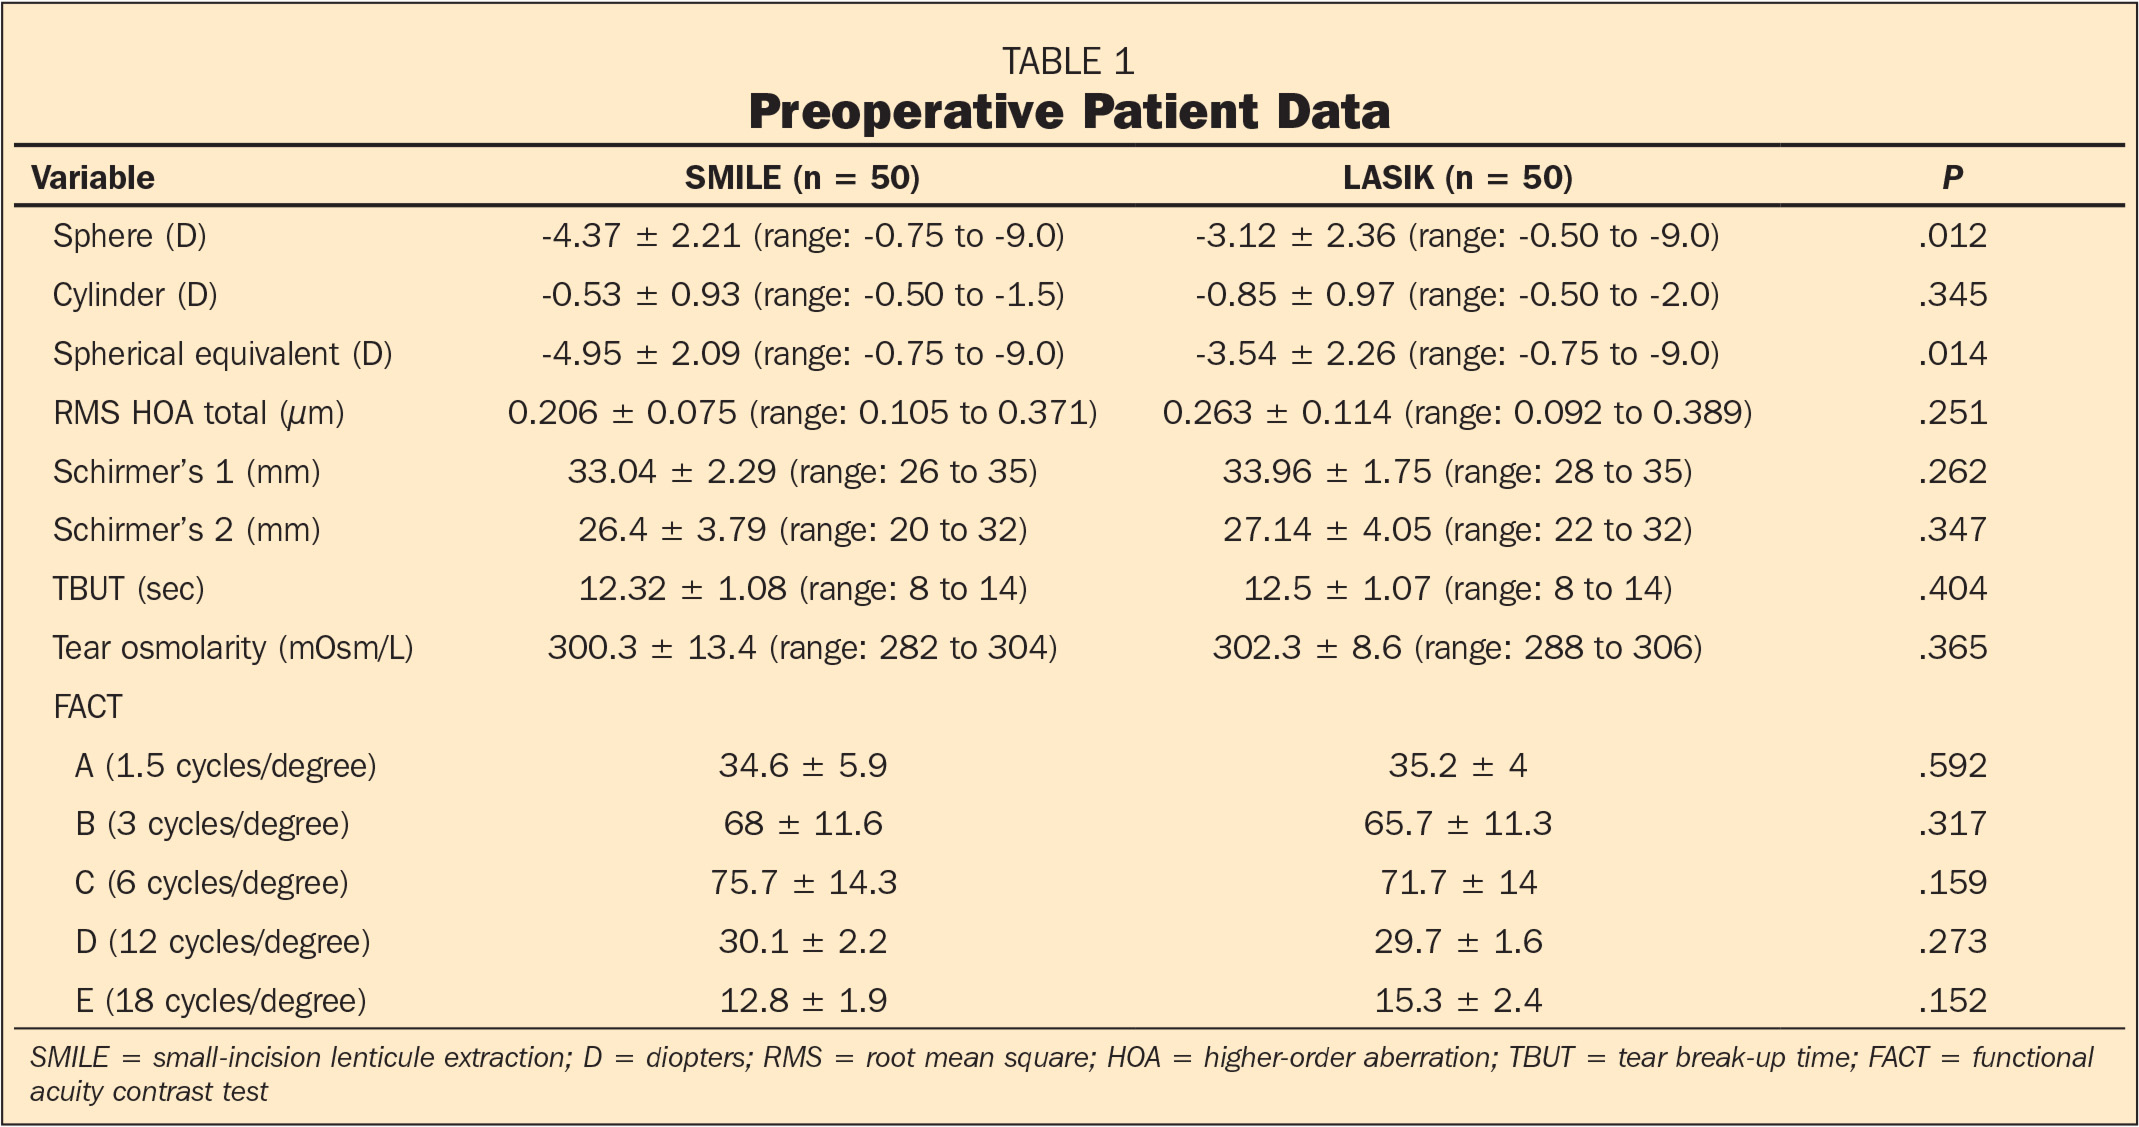 Preoperative Patient Data